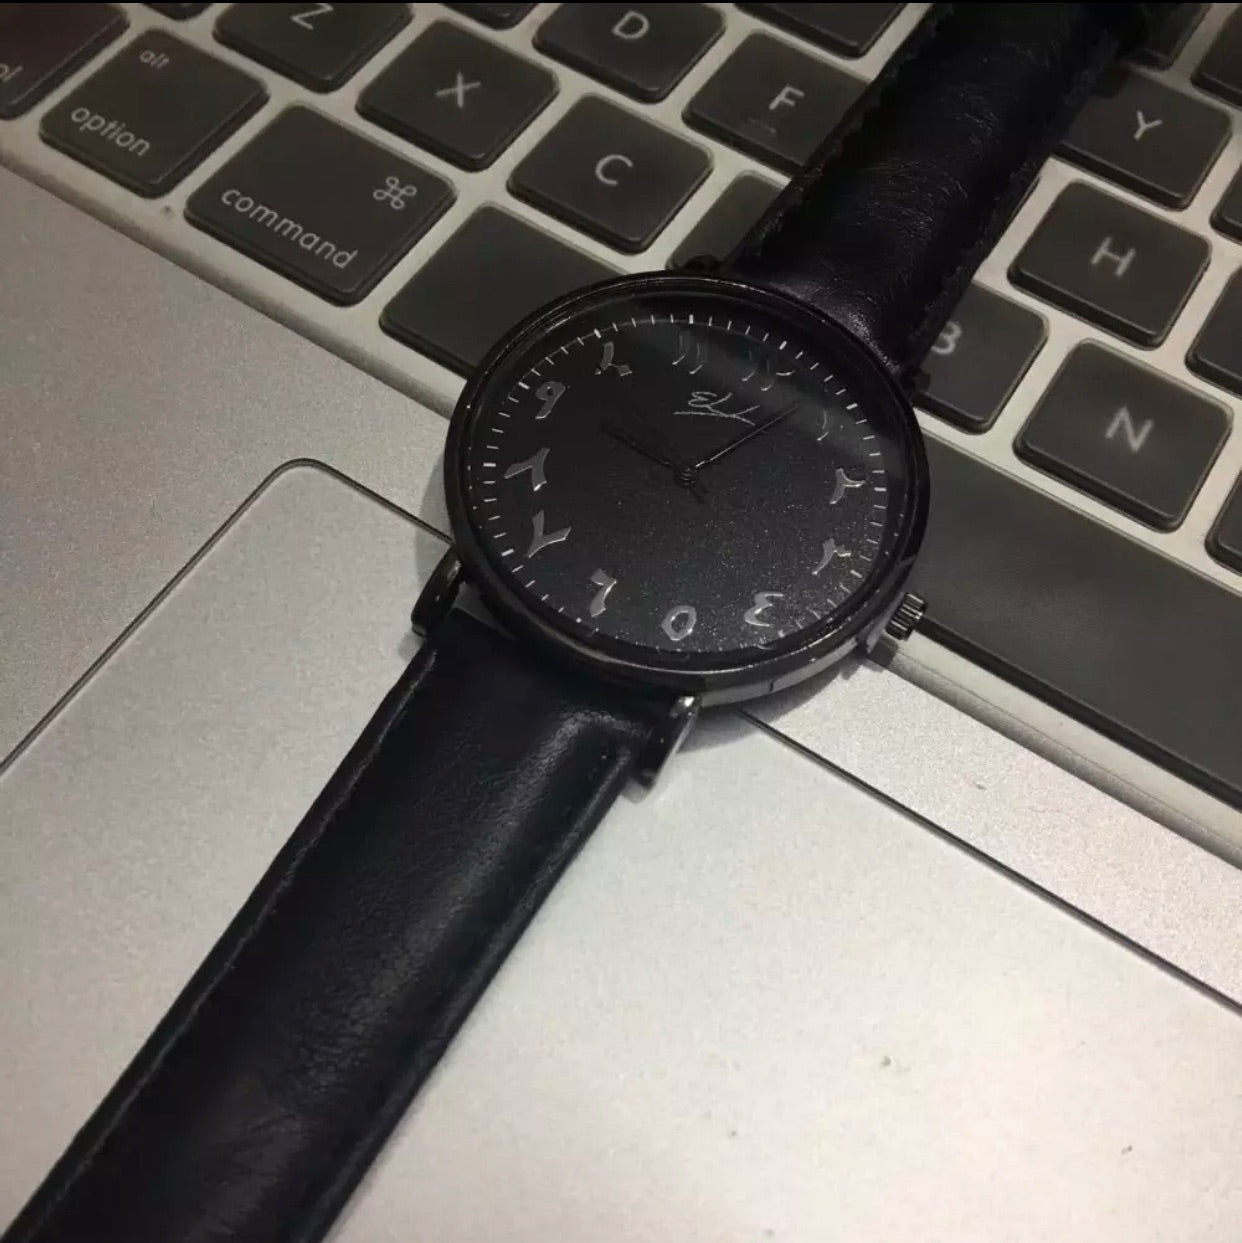 Limited Elrayah Watch - Elrayah